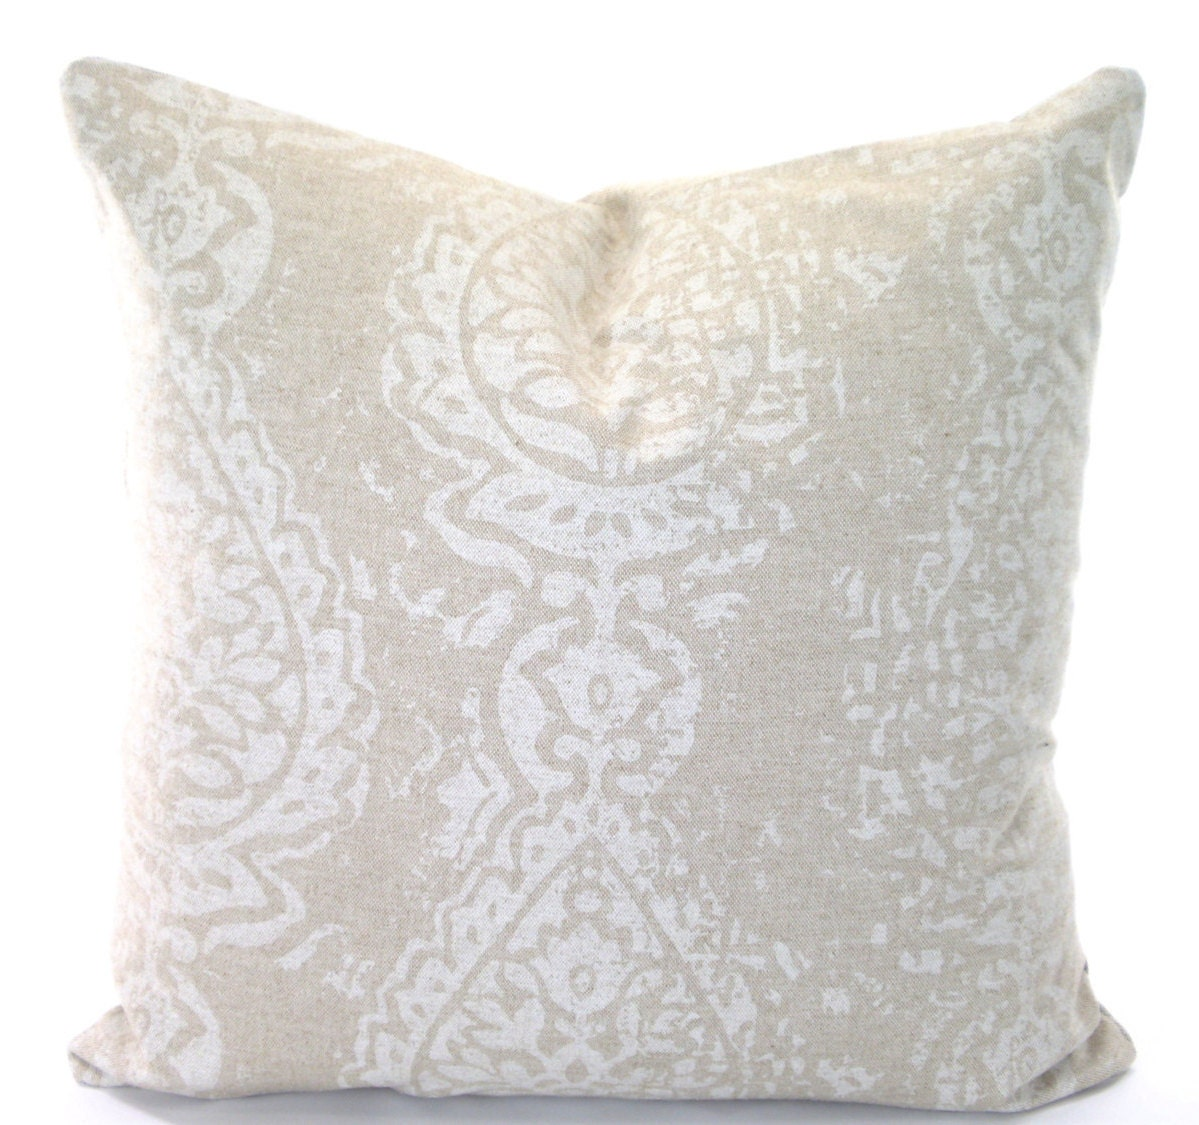 Tan Off White Decorative Throw Pillow by PillowCushionCovers